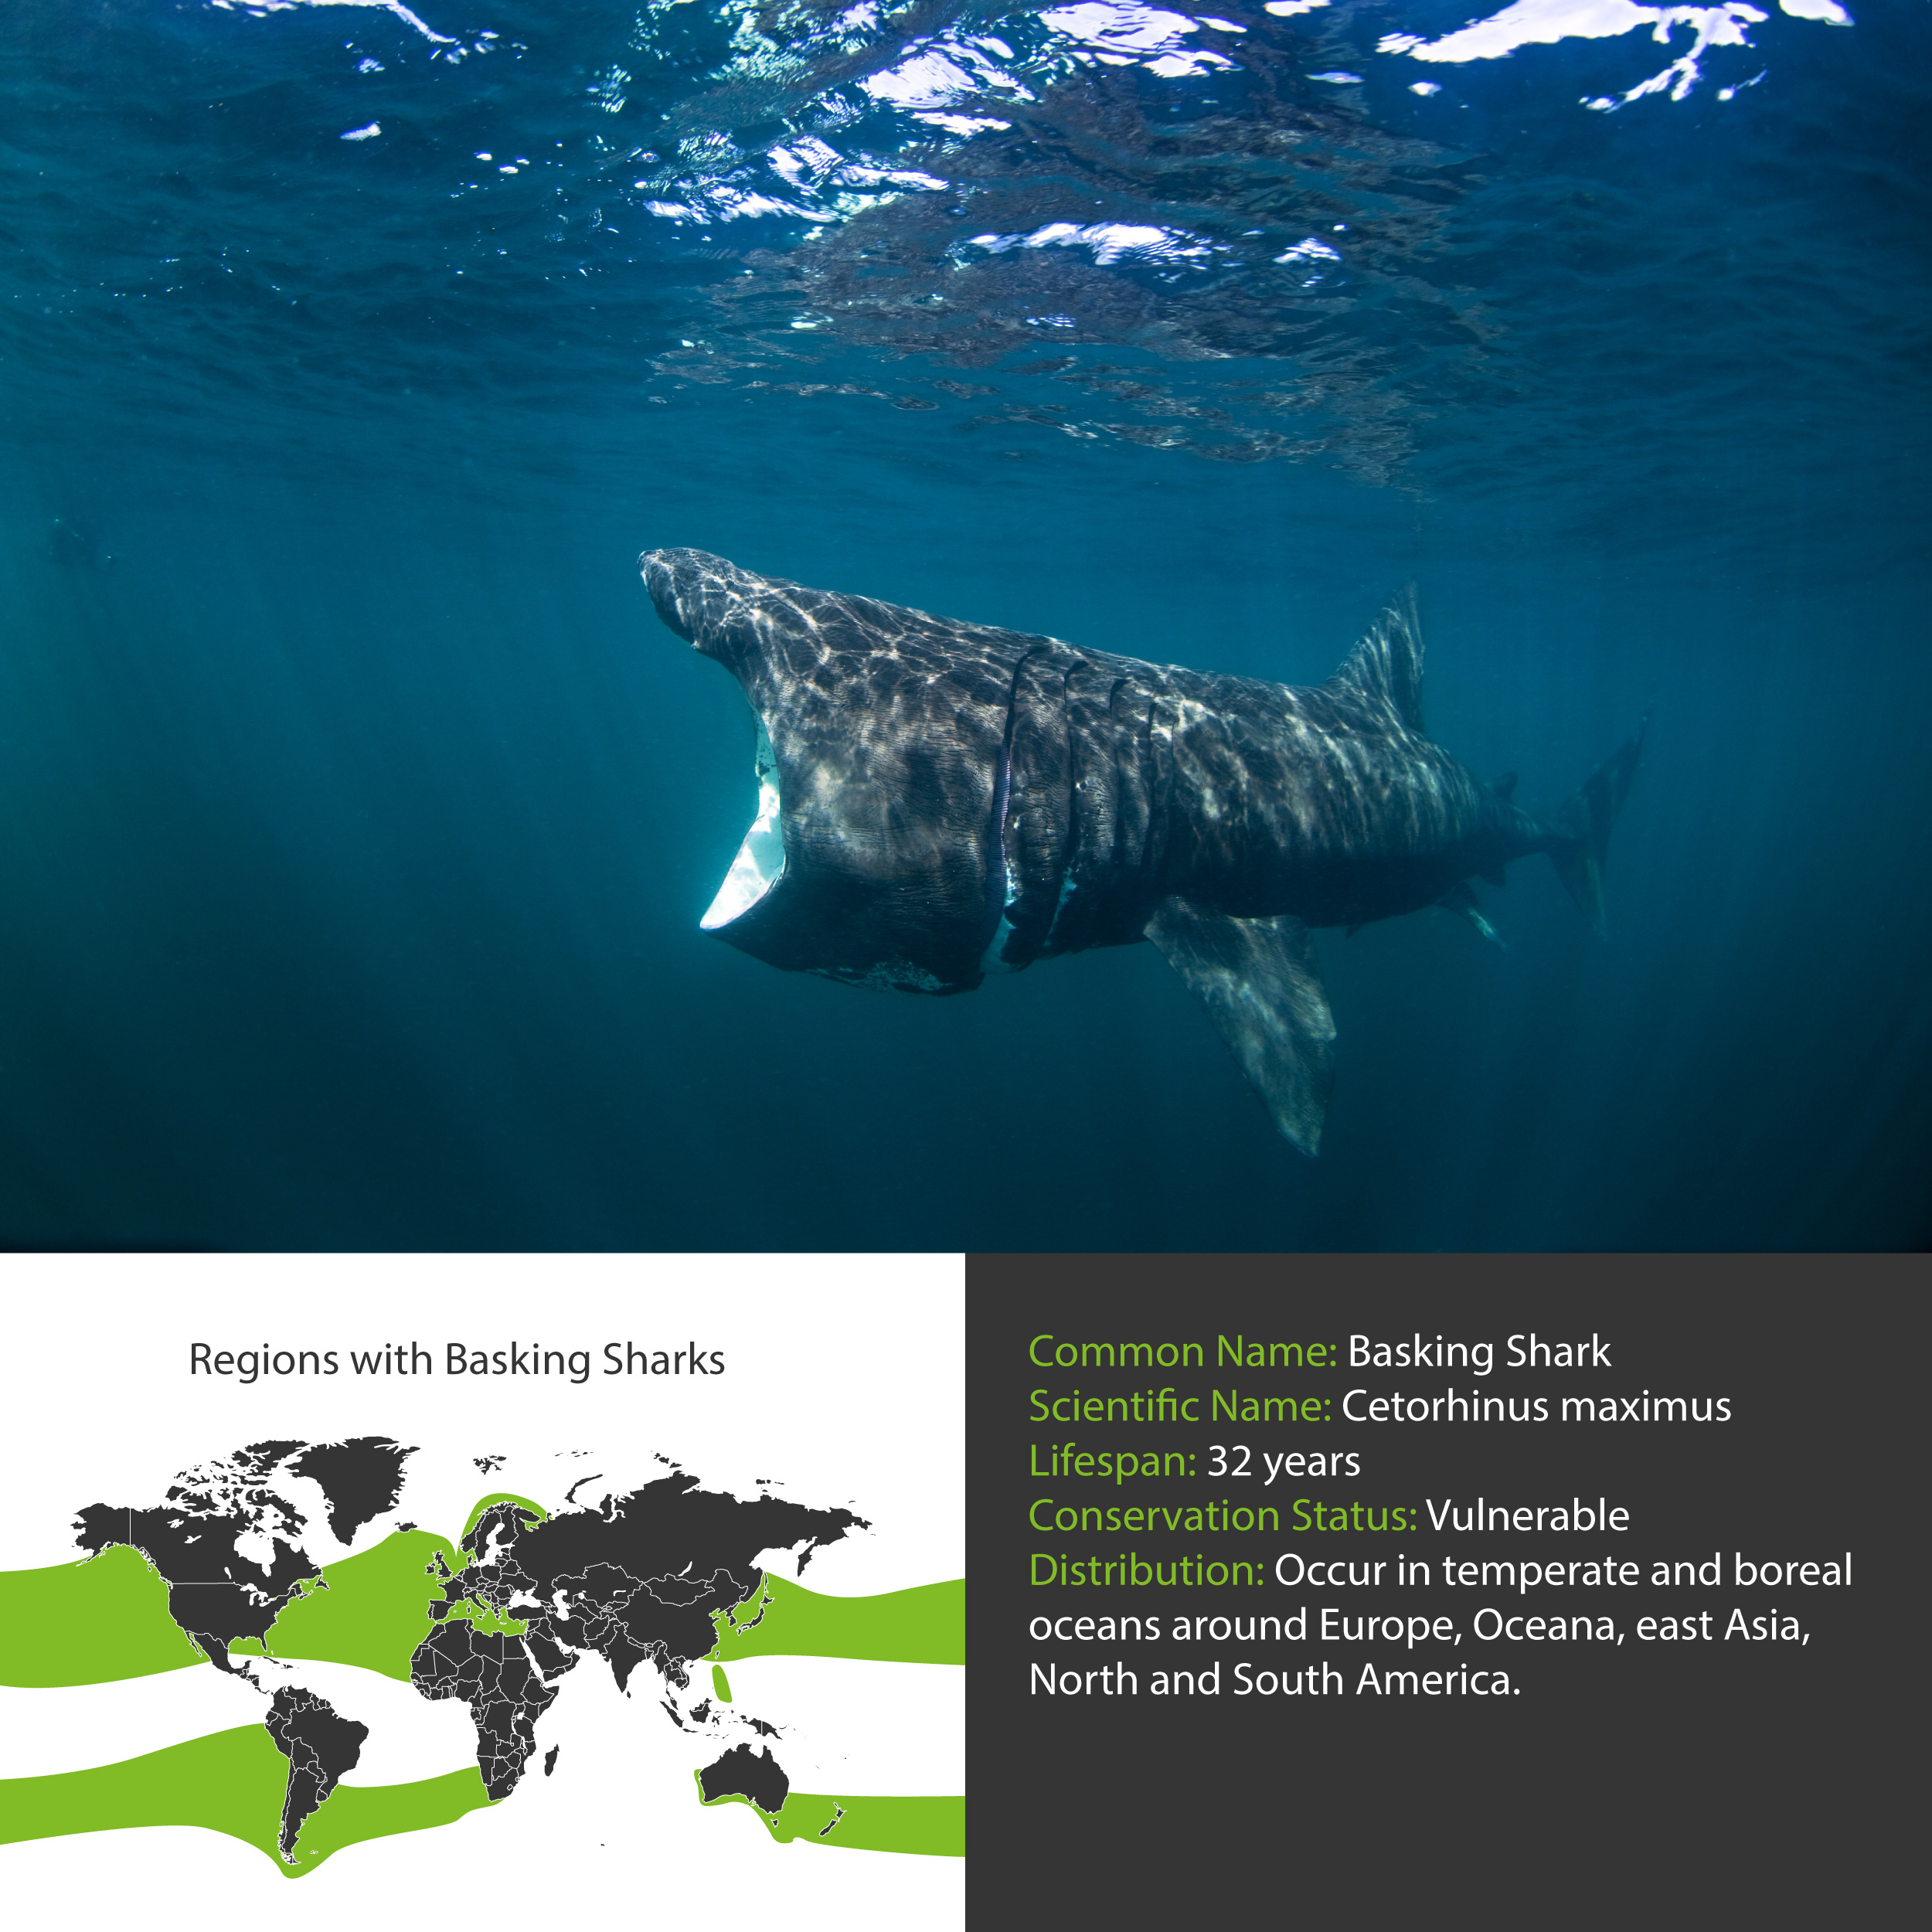 Basking Shark Distribution